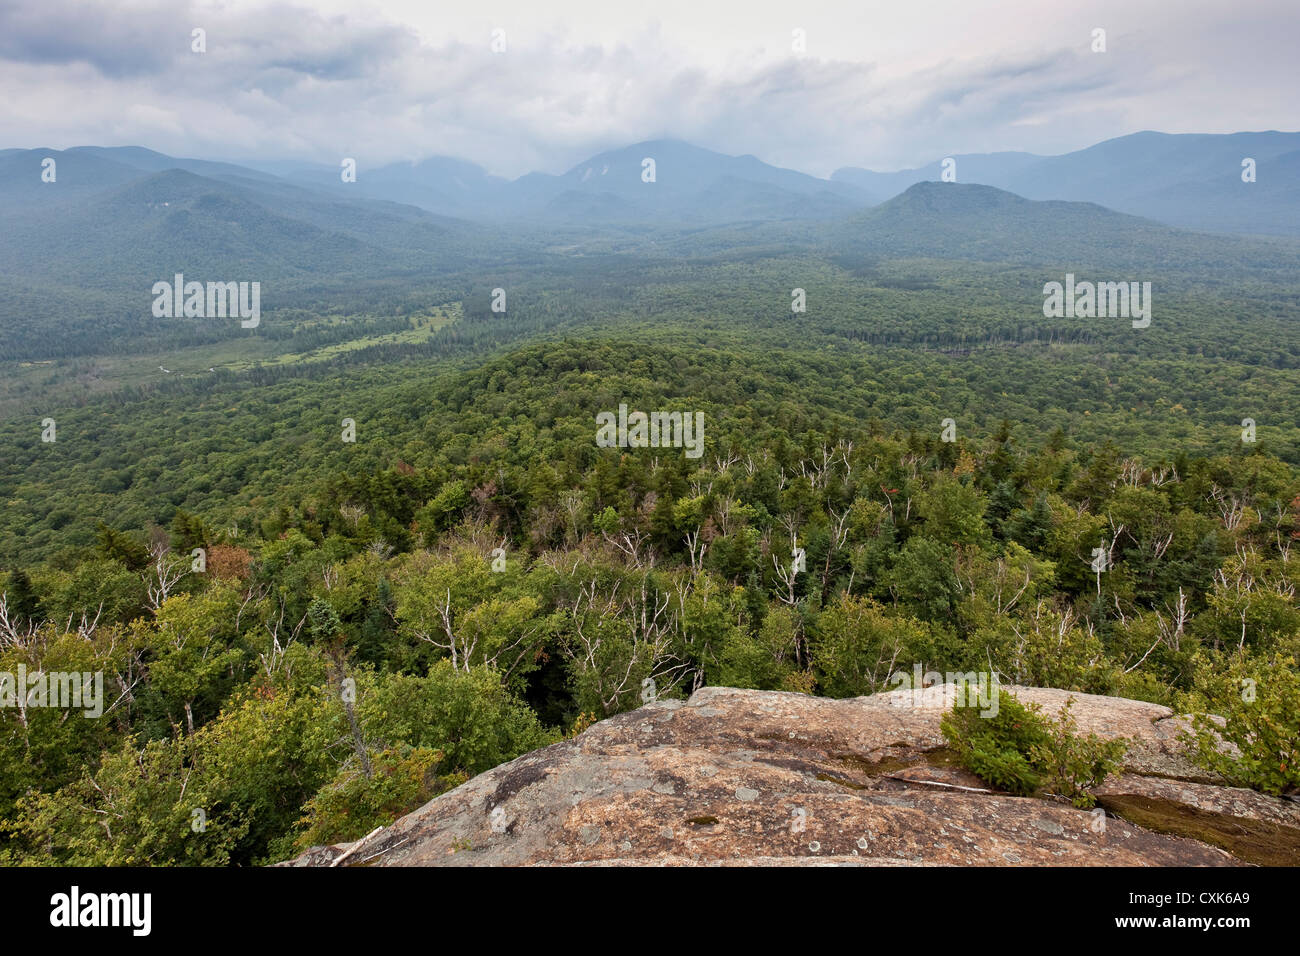 View of Mt. Marcy from Mt. Van Hoevenberg, Adirondack Mountains, New York - Stock Image